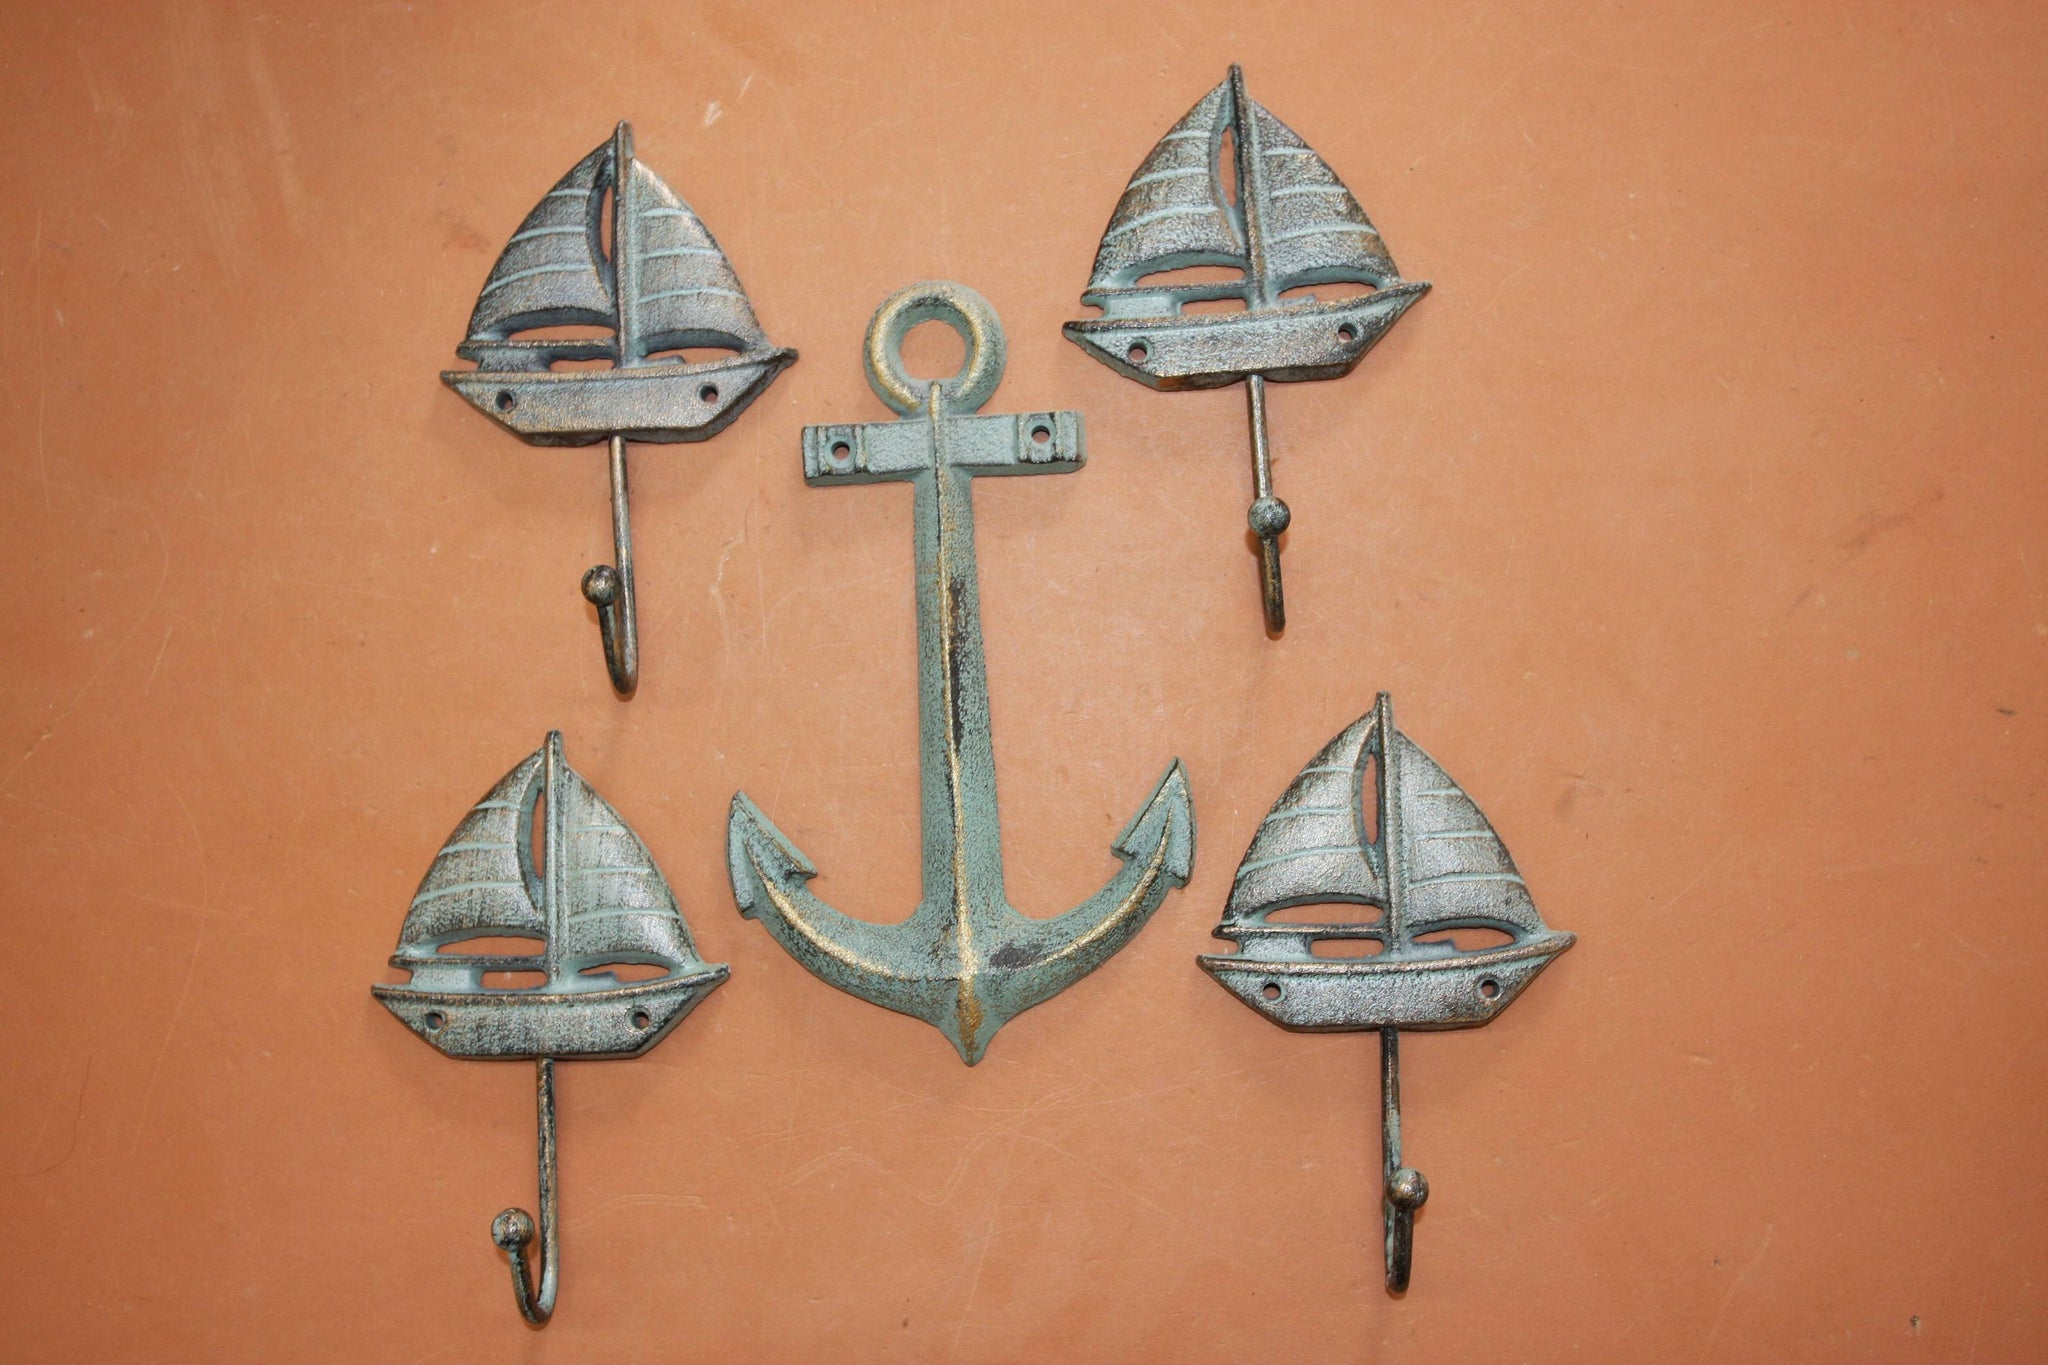 5) Sailboat Design Boys Bathroom Decor, Bronze-look Sailboat Towel Hooks & Anchor Plaque, Cast Iron, Smooth Sailing, Free Ship